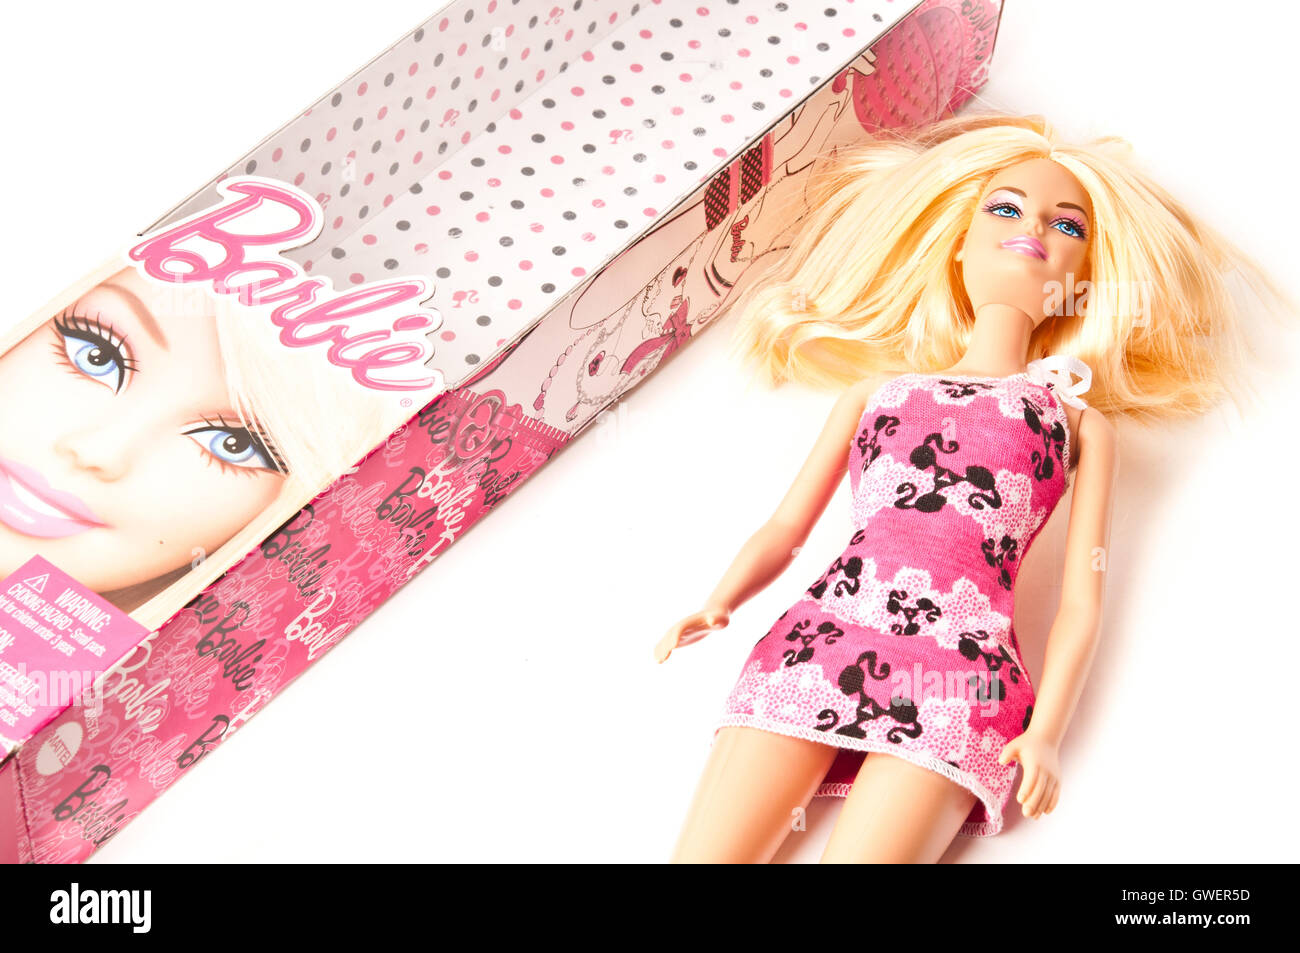 Barbie Doll Cut Out Stock Photos Barbie Doll Cut Out Stock Images